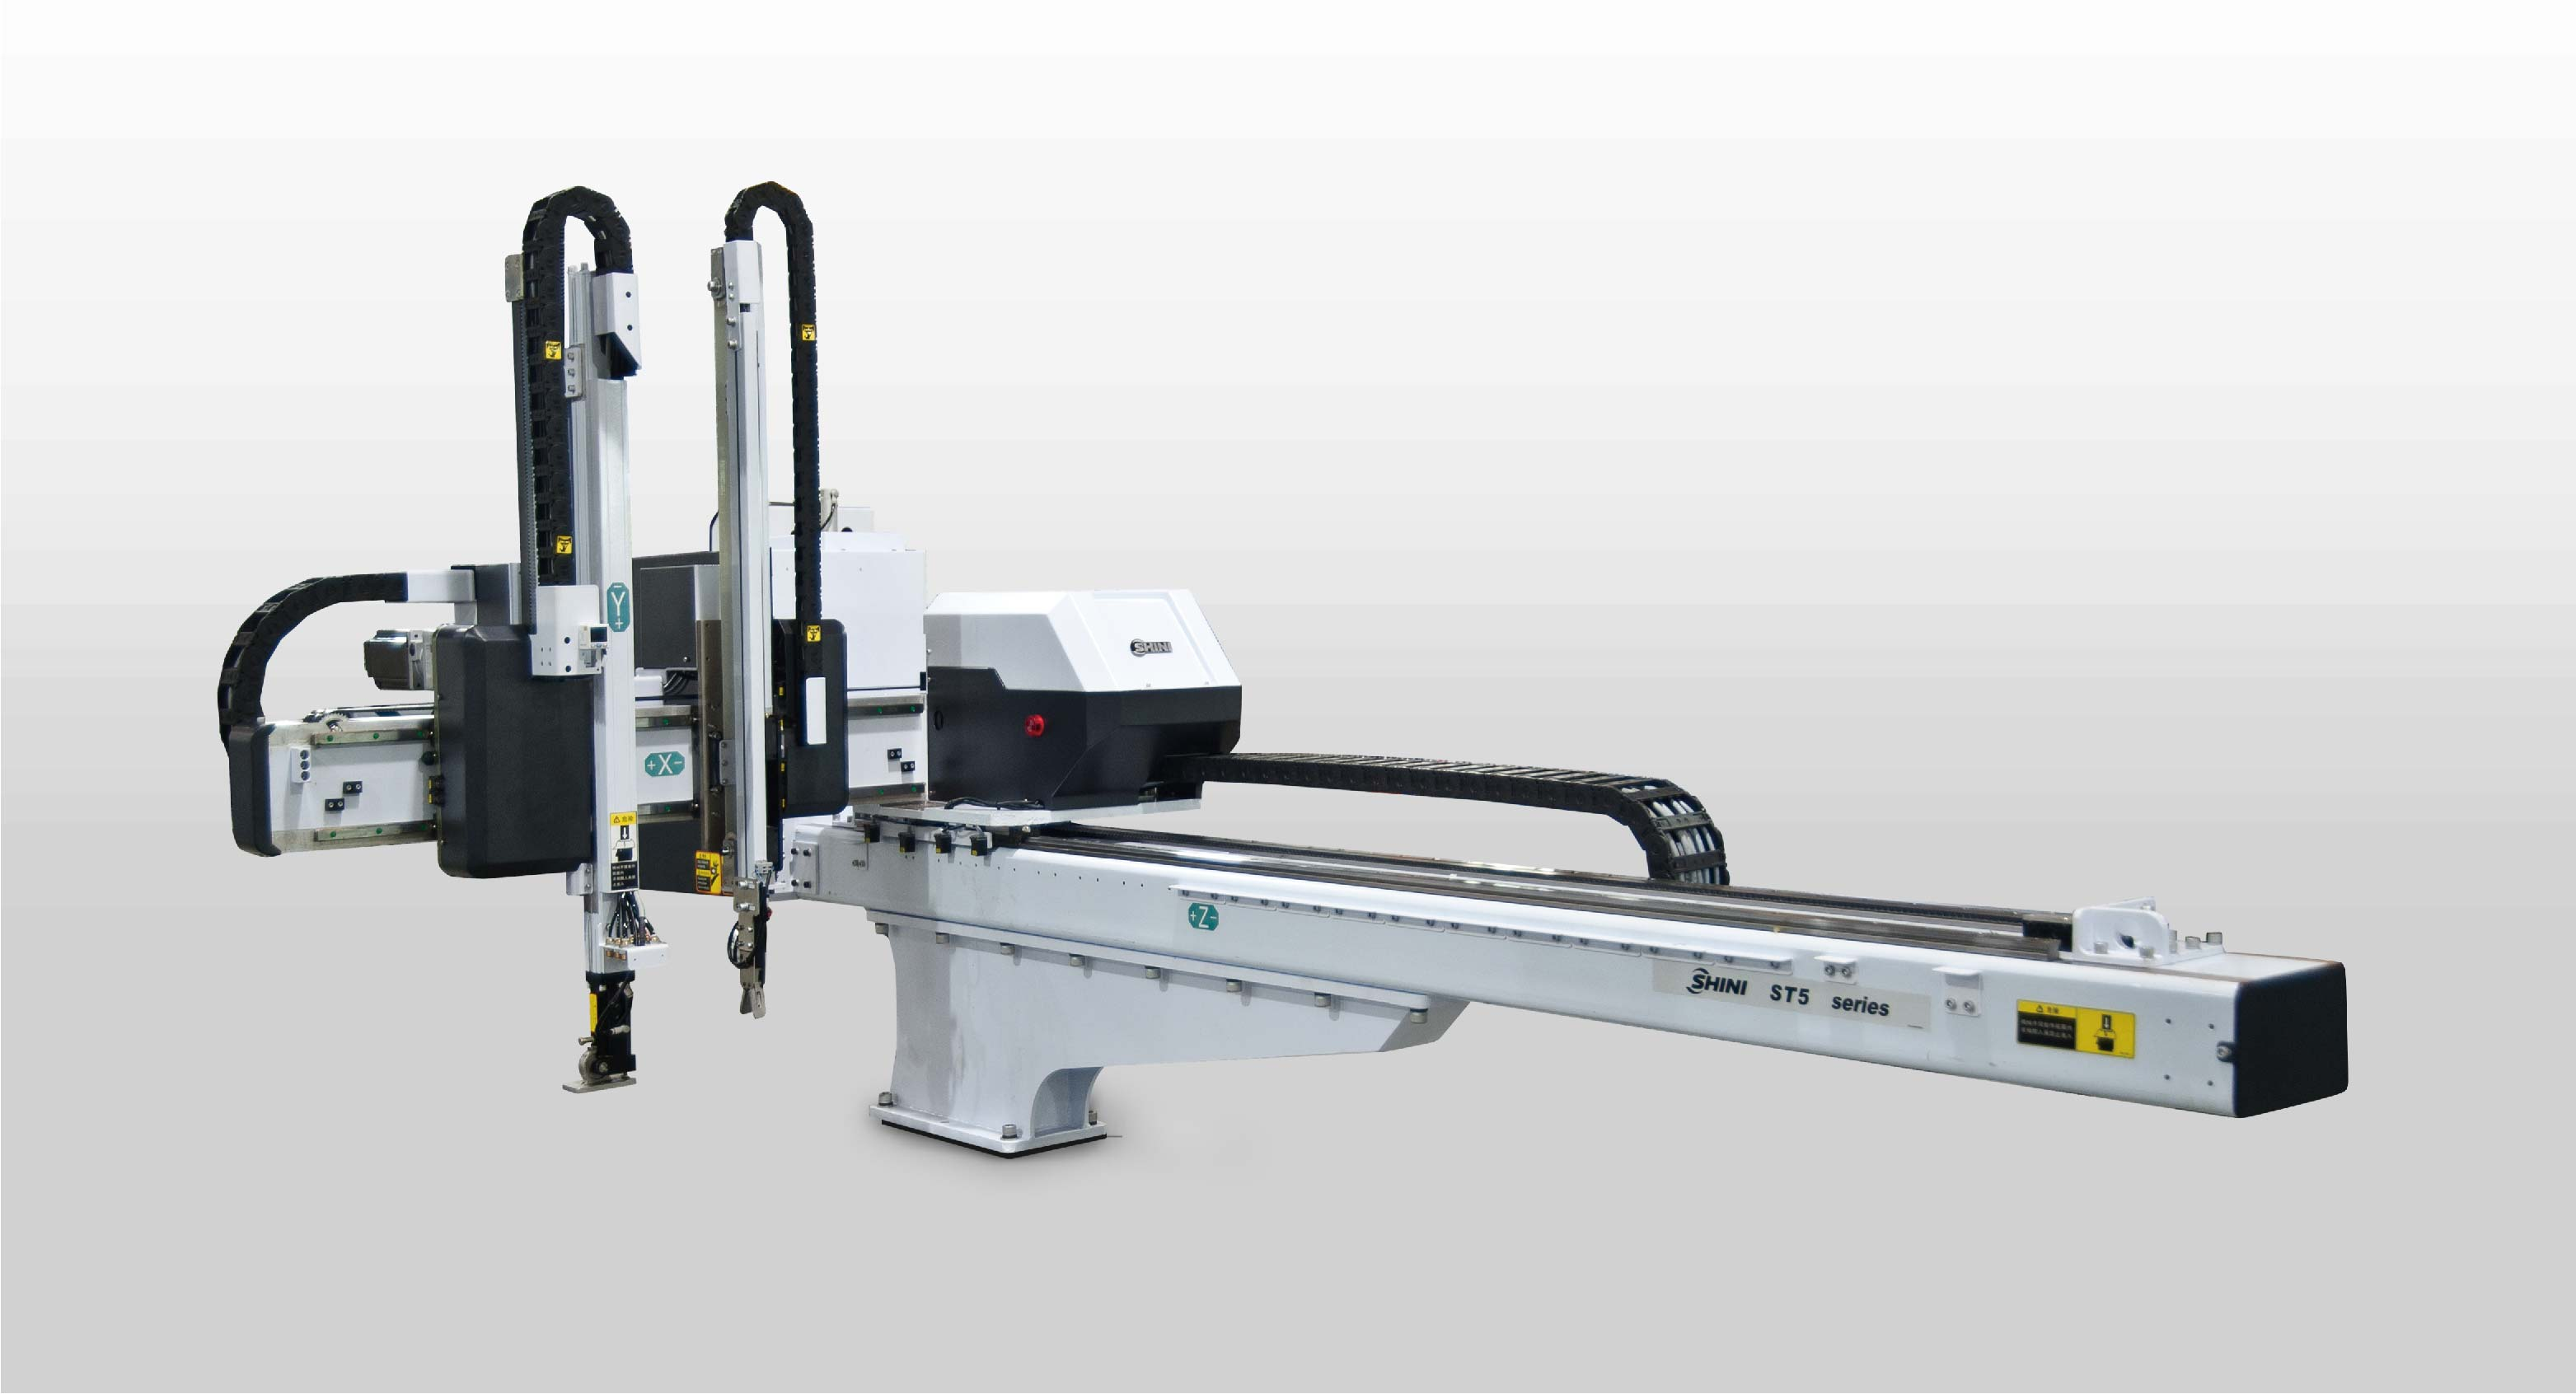 Five Axes Servo Driven Robot - ST5